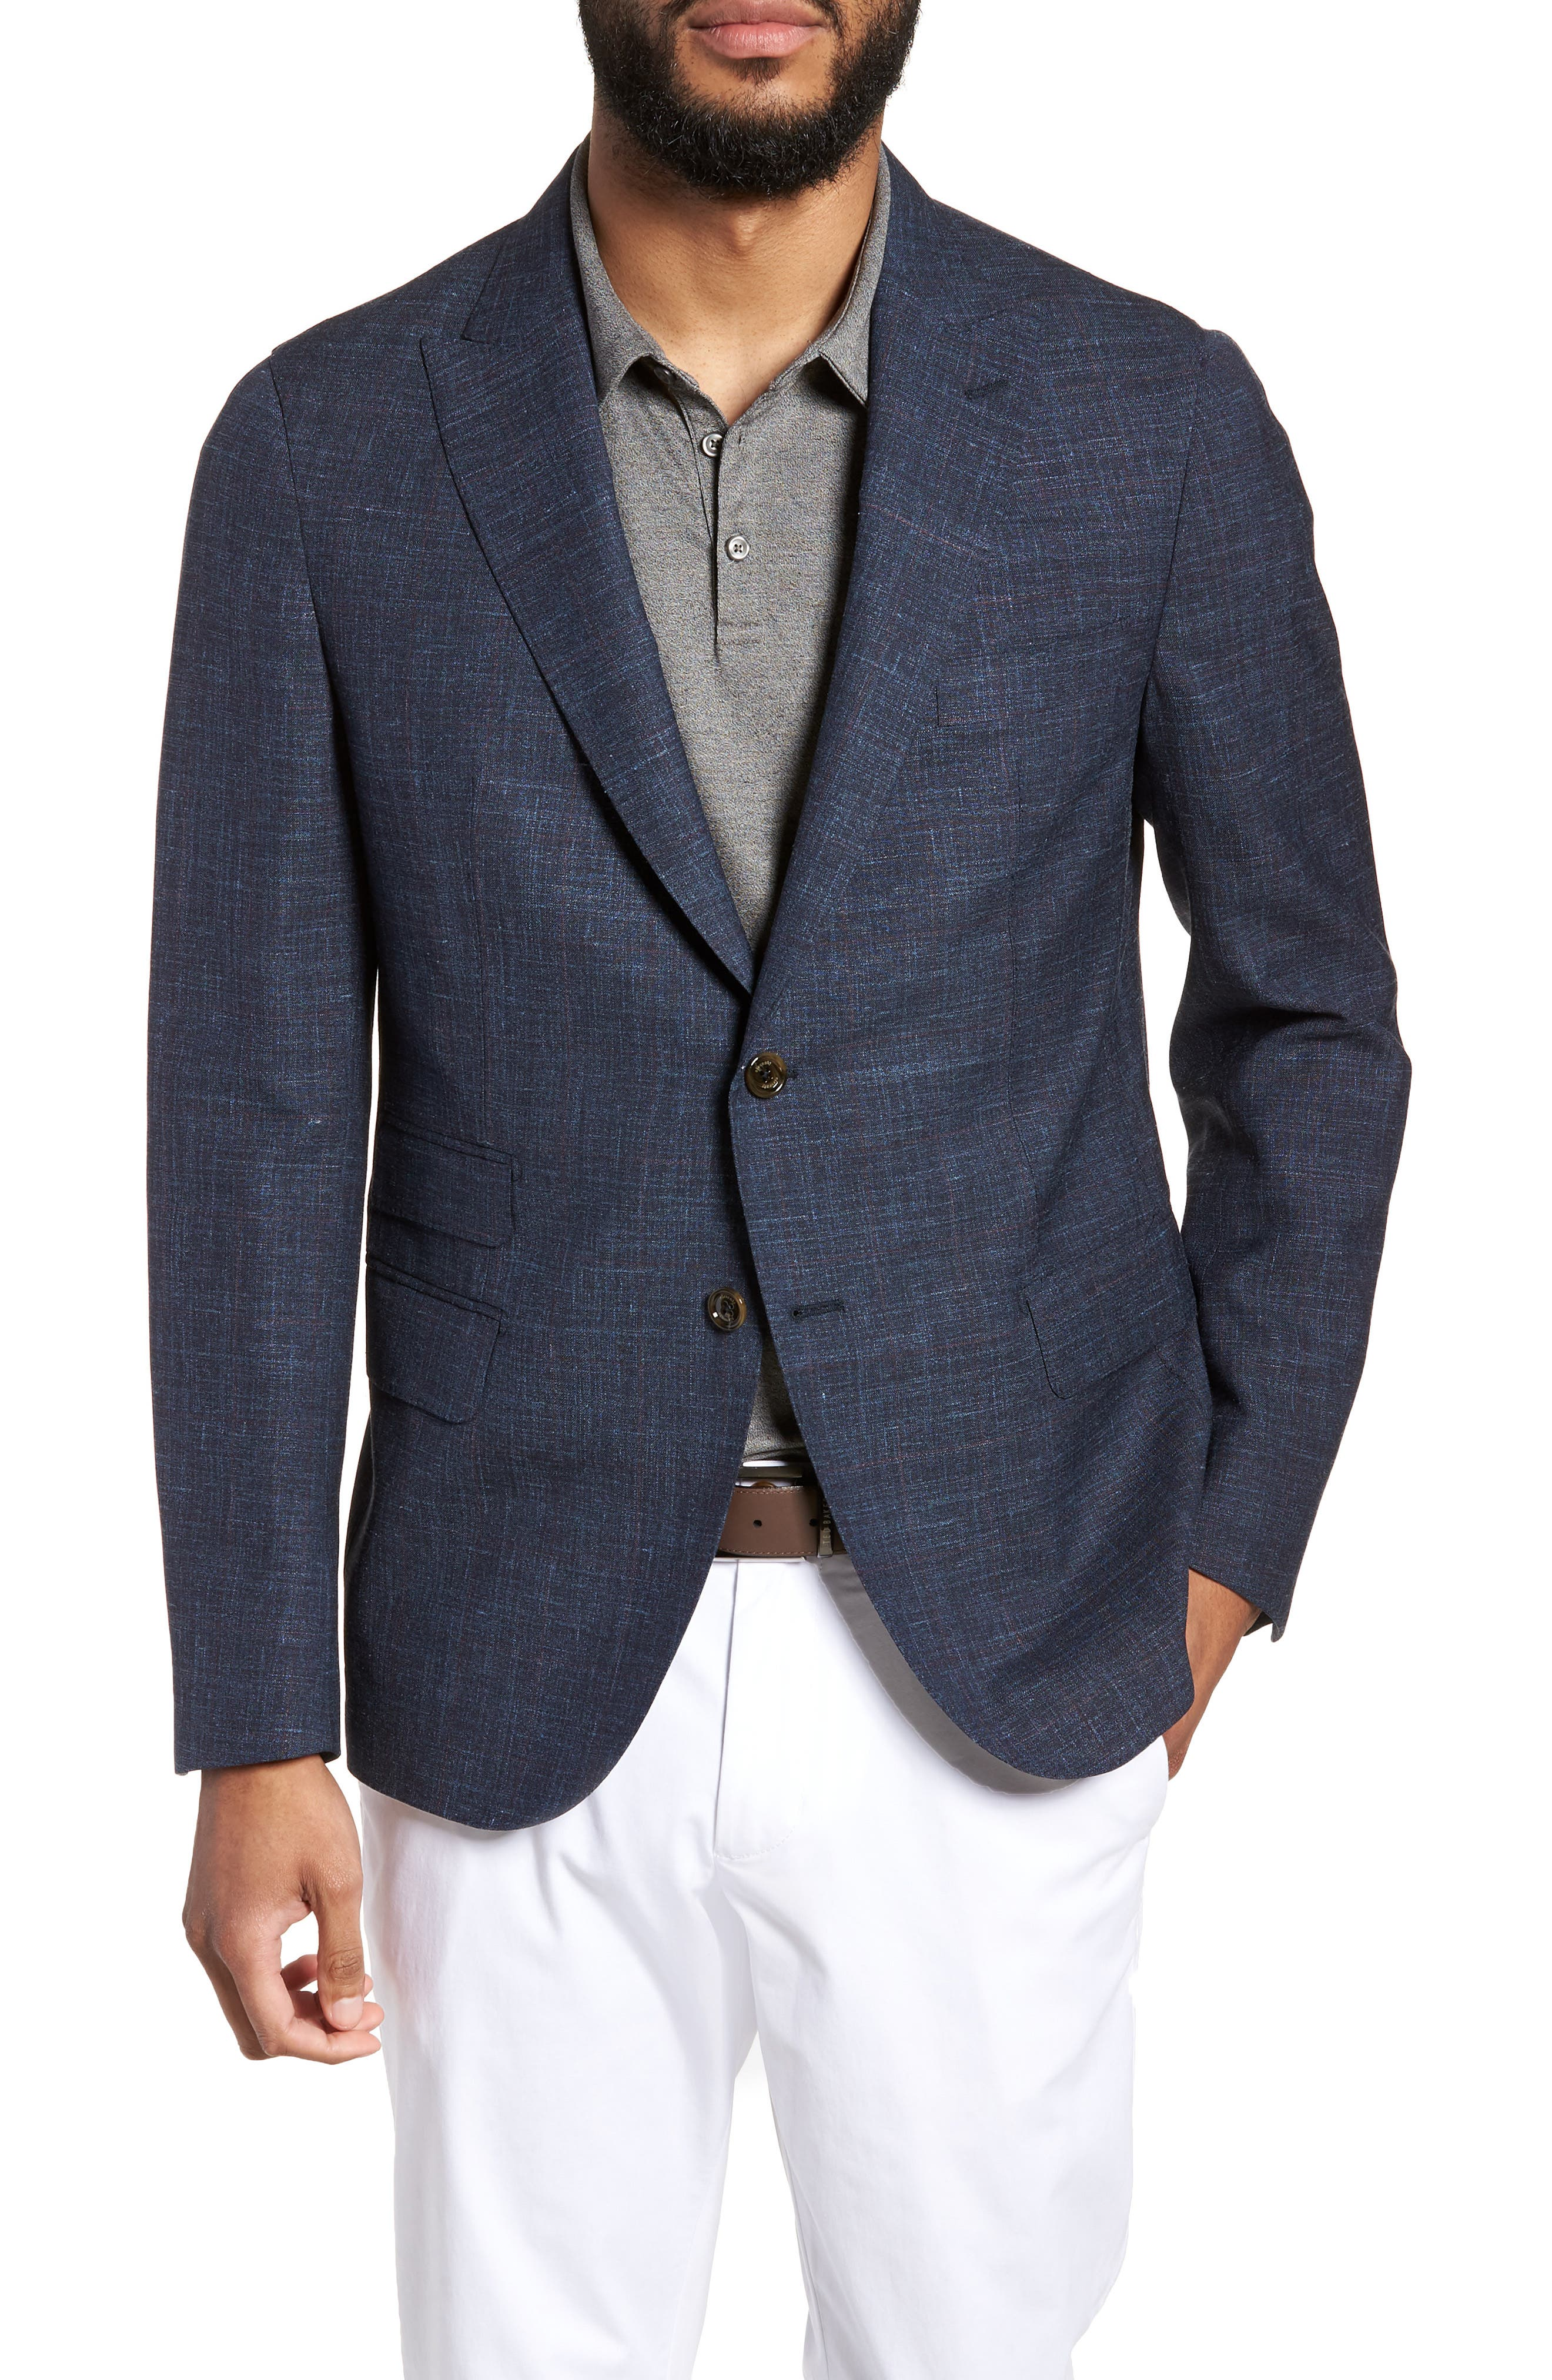 Trim Fit Wool Blend Blazer,                             Main thumbnail 1, color,                             Denim Blue